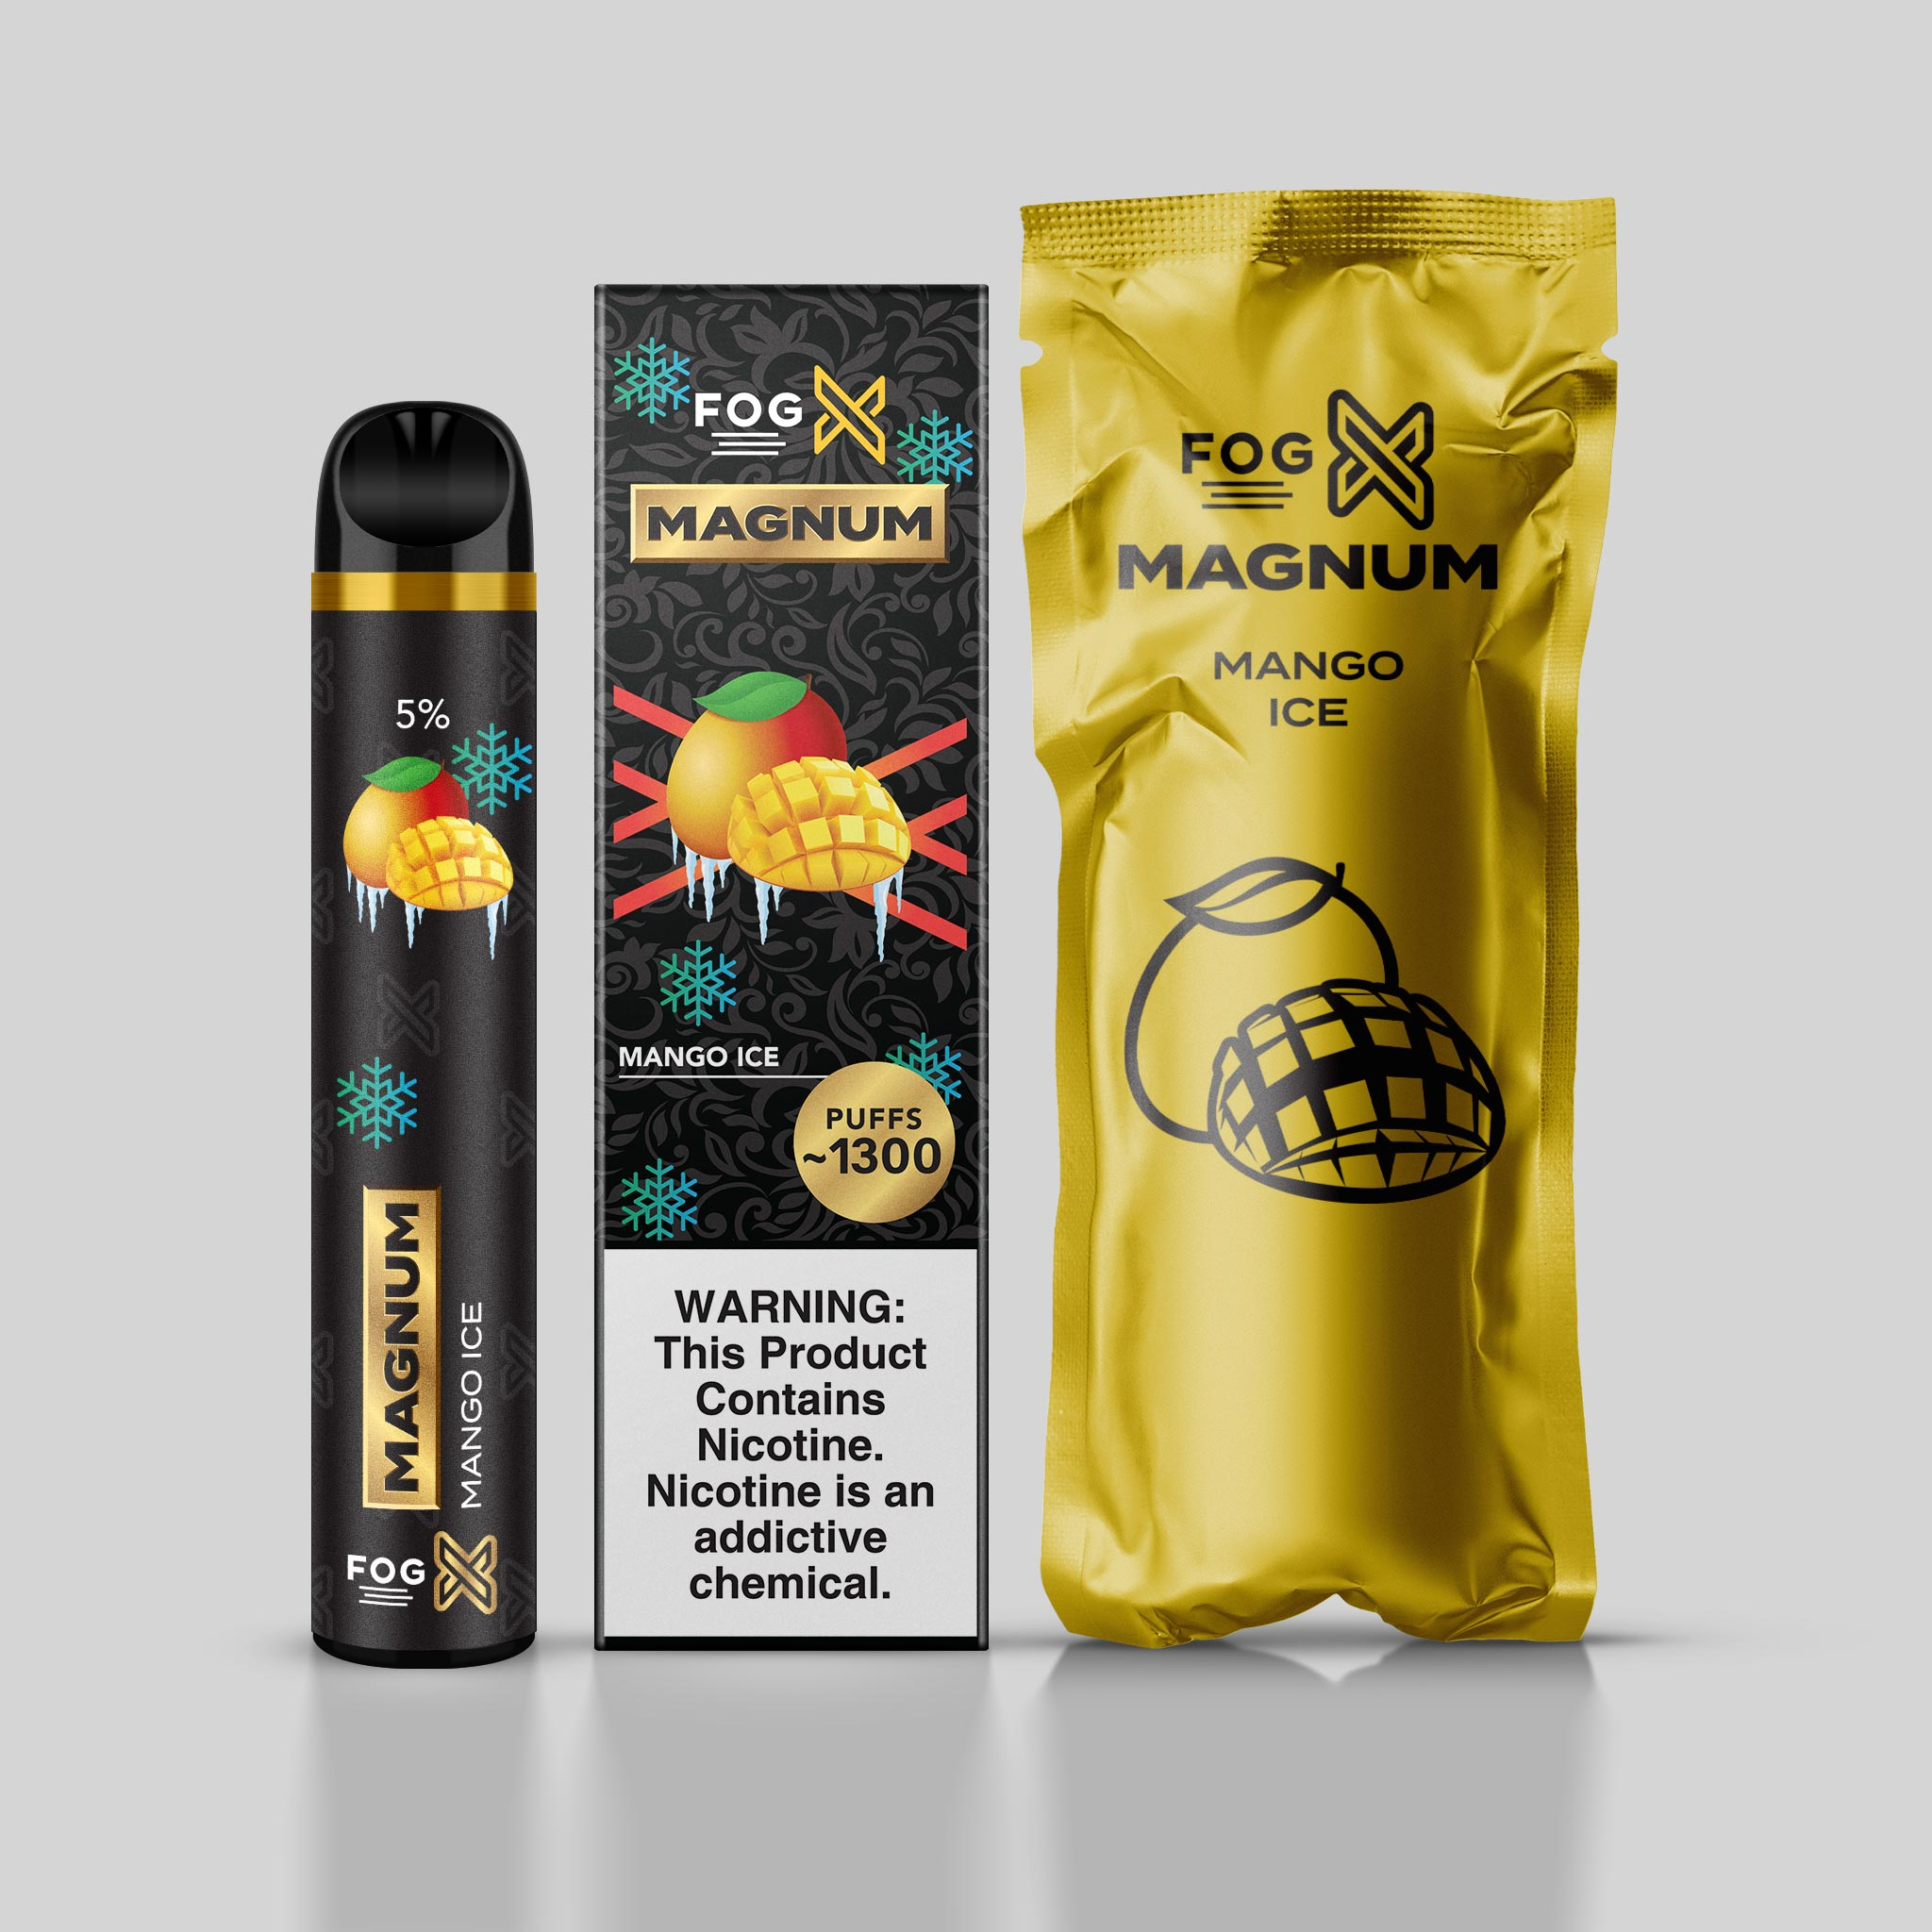 FOG X Vapor Magnum Mango Ice Disposable Vape Device